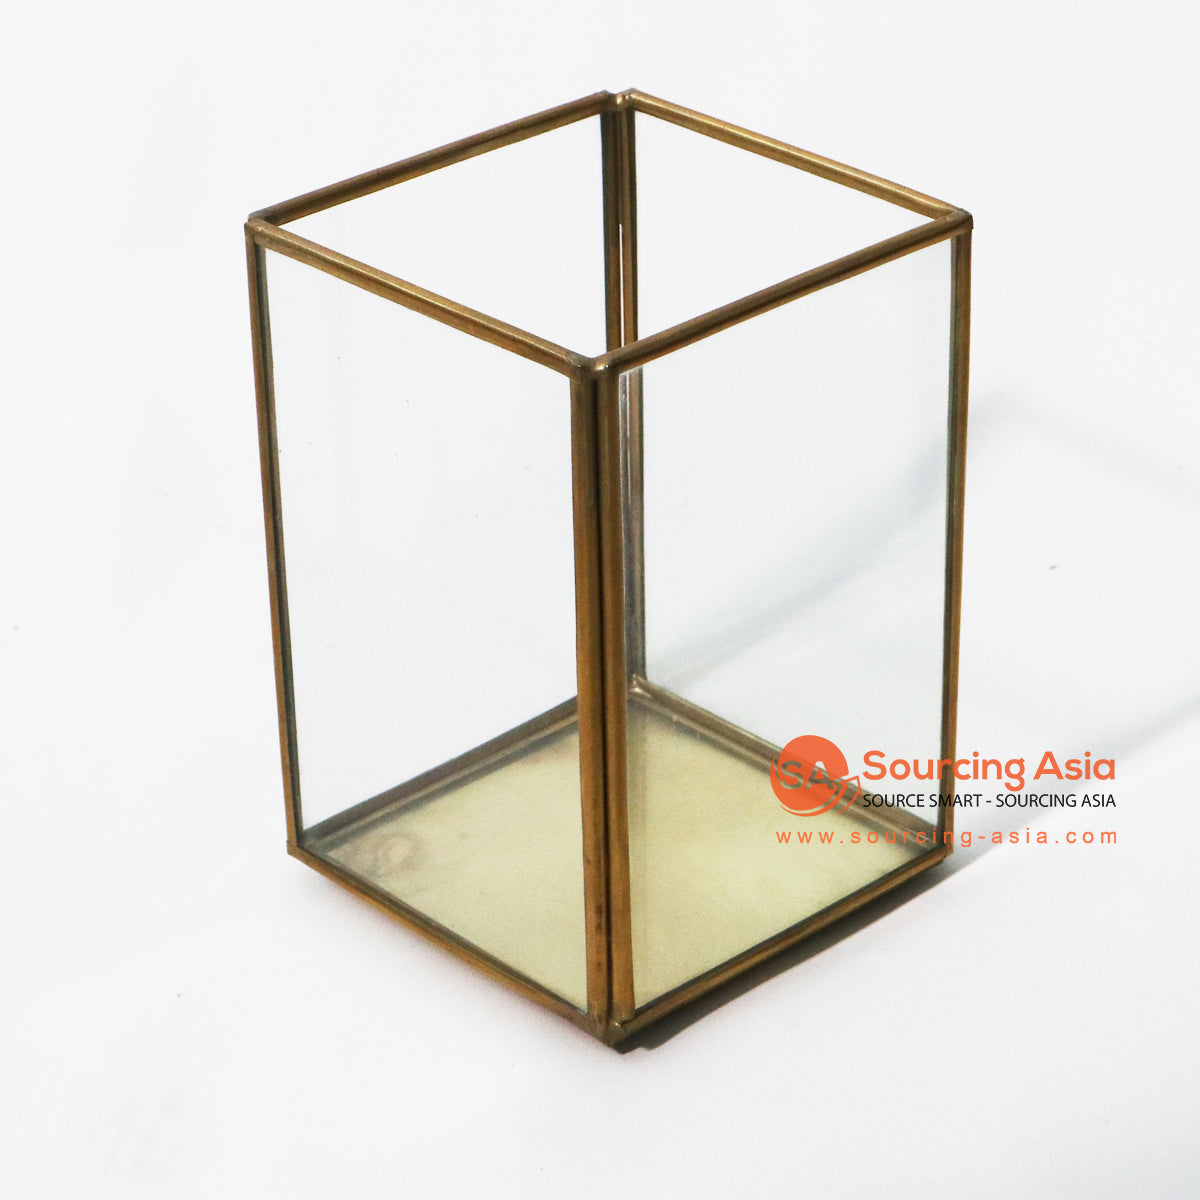 ODE040-1 BRONZE BOX CANDLE HOLDER